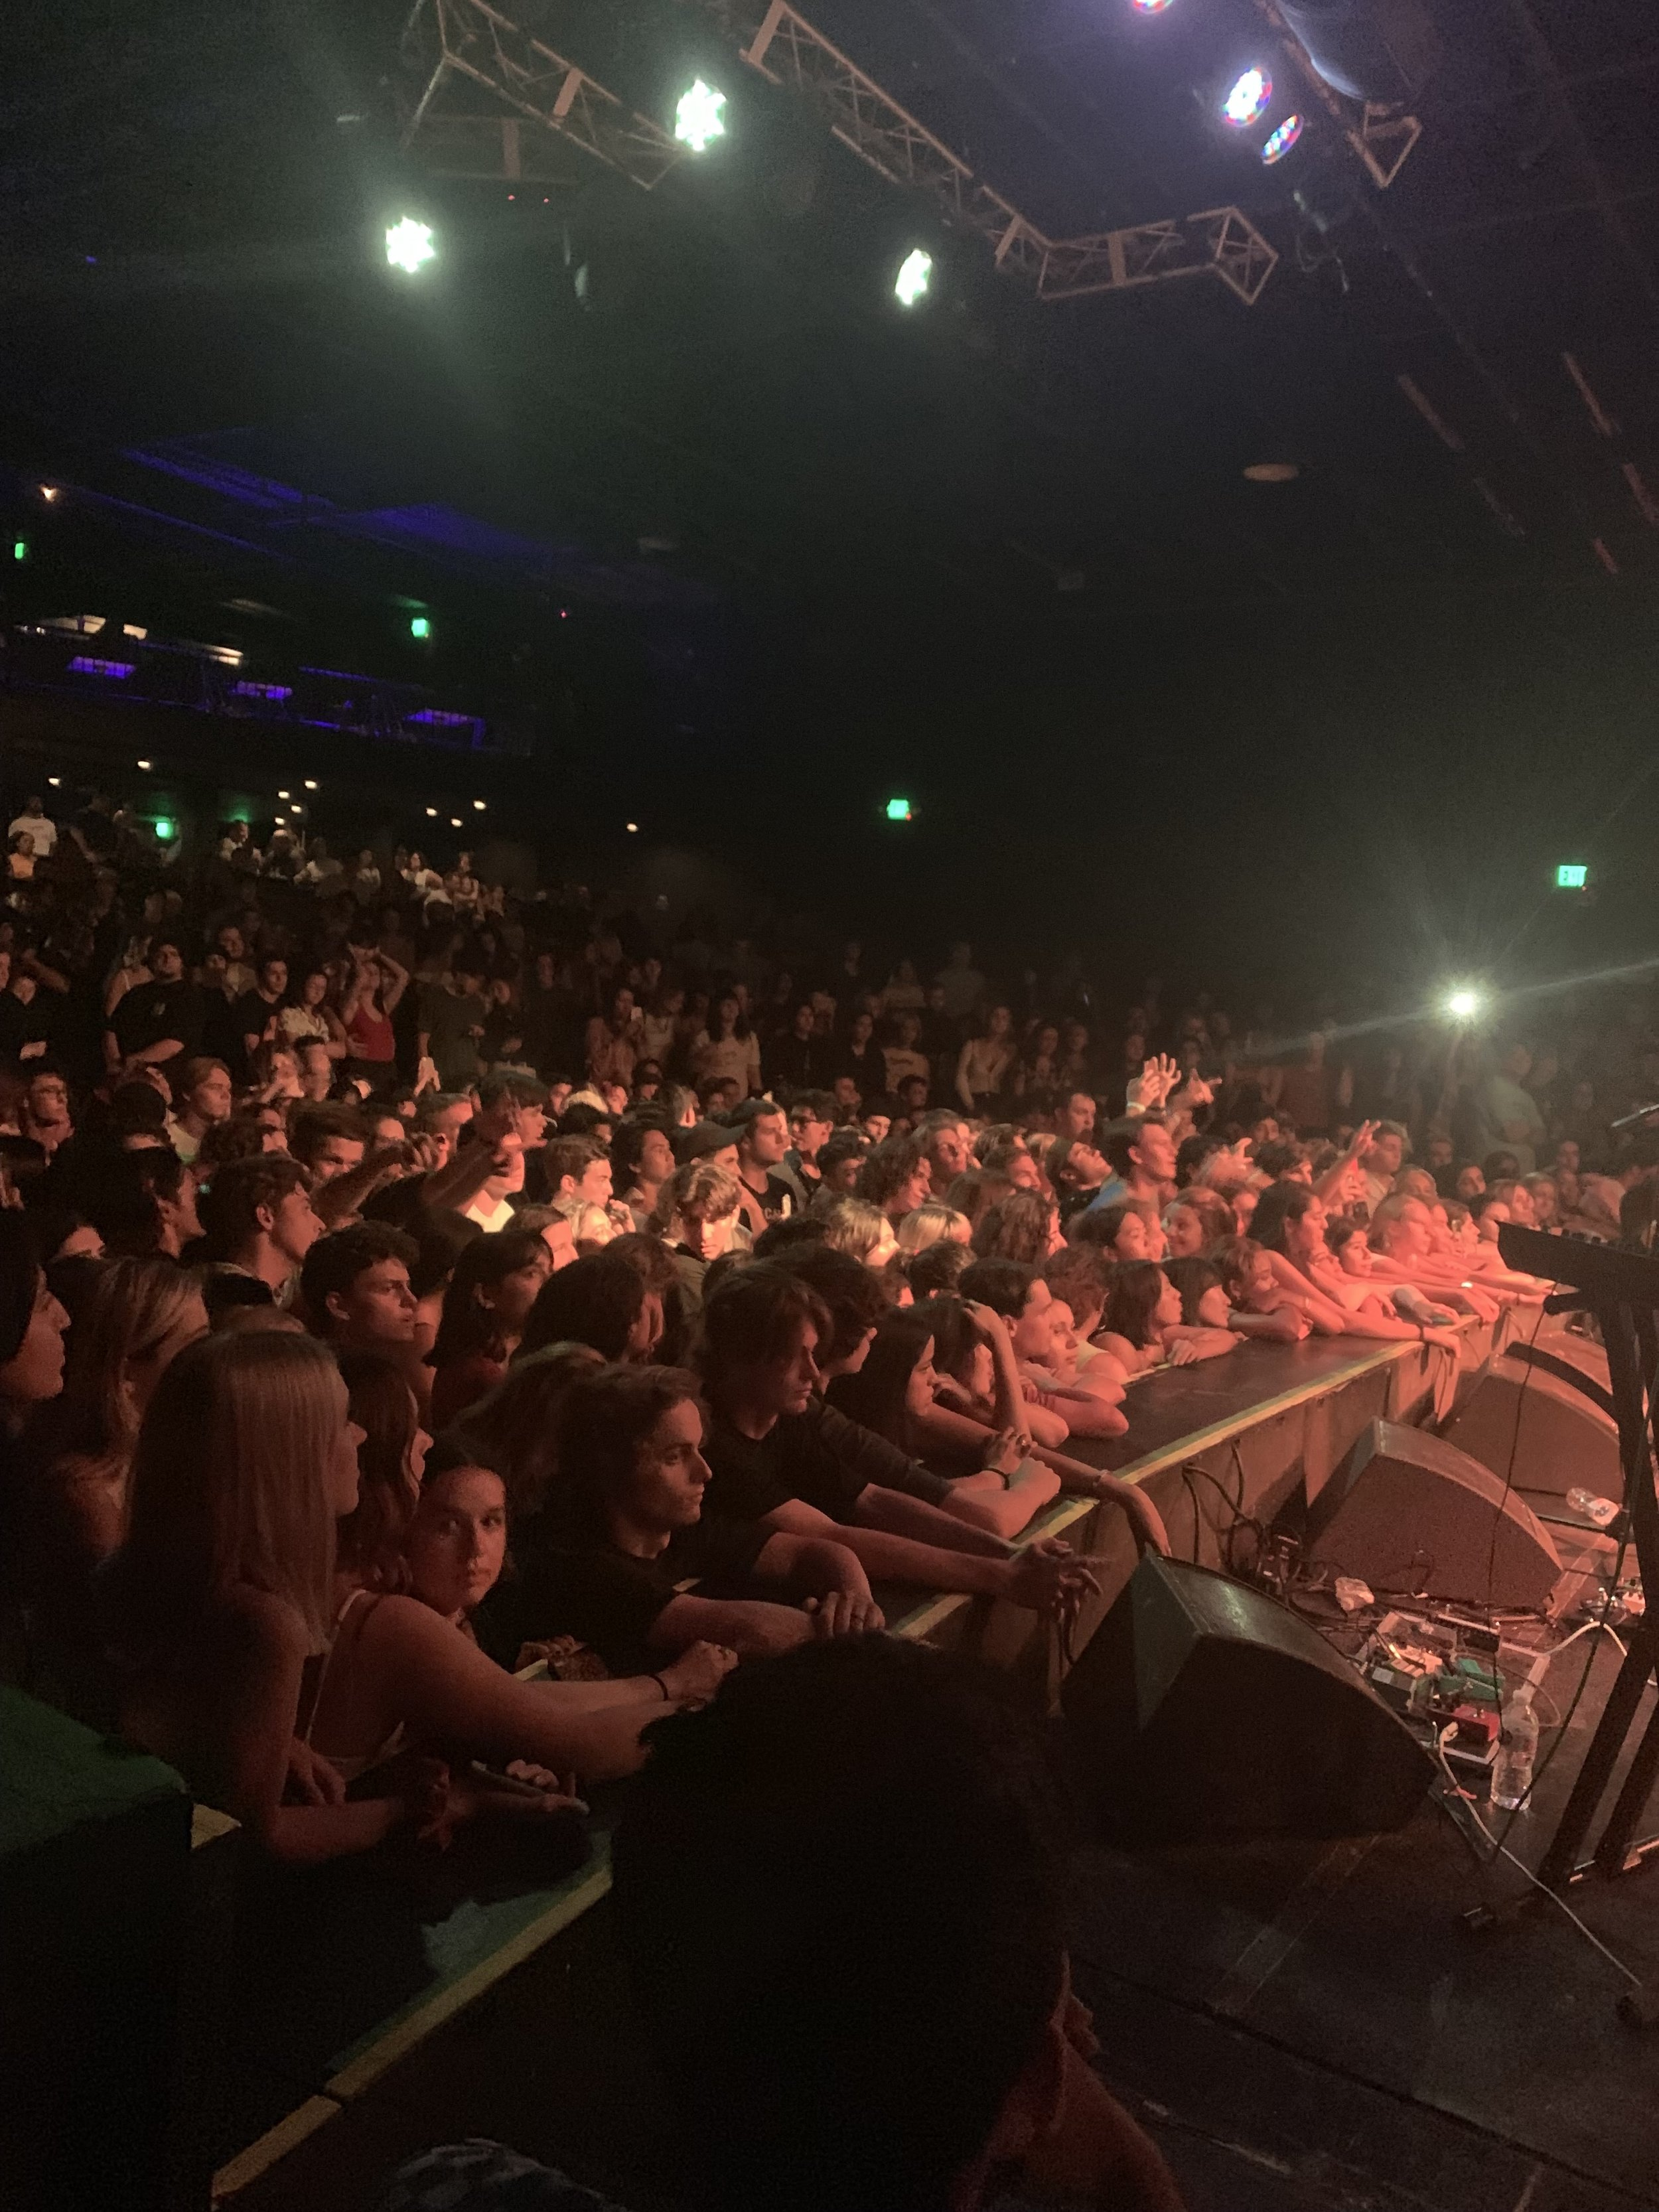 The crowd at The Grinns's show